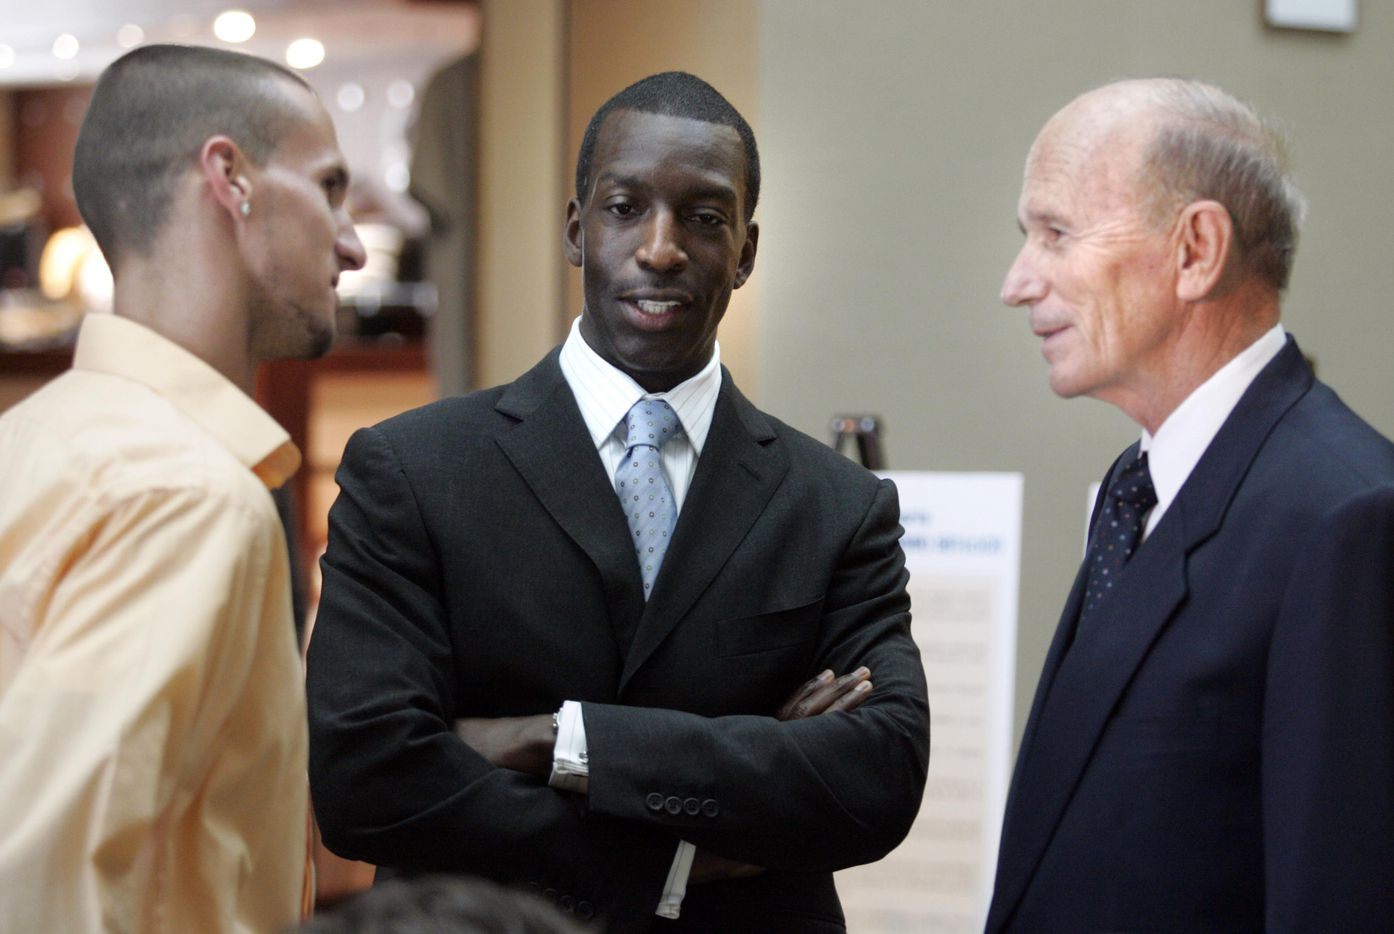 From left to right: Jeremy Wariner, Michael Johnson and Dr. Kenneth Cooper visit before a press conference at Cooper Aerobics Center at Craig Ranch in McKinney on Wednesday, June 28, 2006. Olympic Champion Michael Johnson has teamed with Dr. Kenneth Cooper to build a world class athletic performance training and research center at McKinney's Craig Ranch.